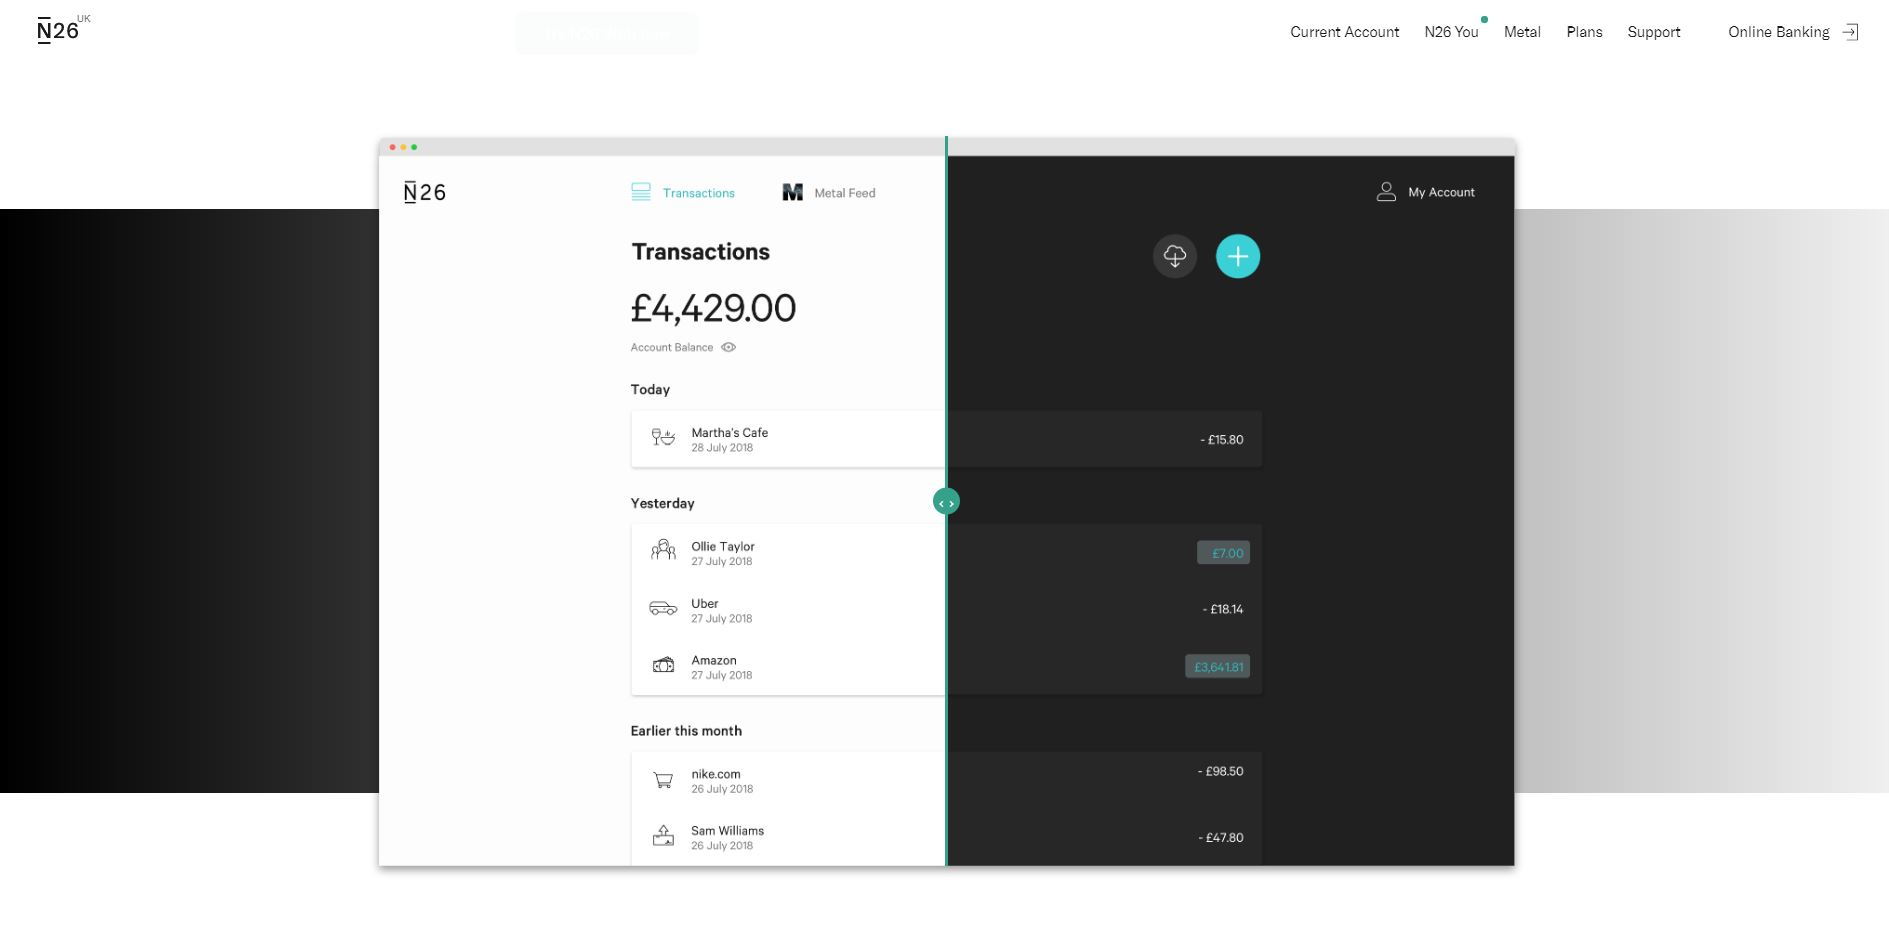 An example of bank transactions with N26